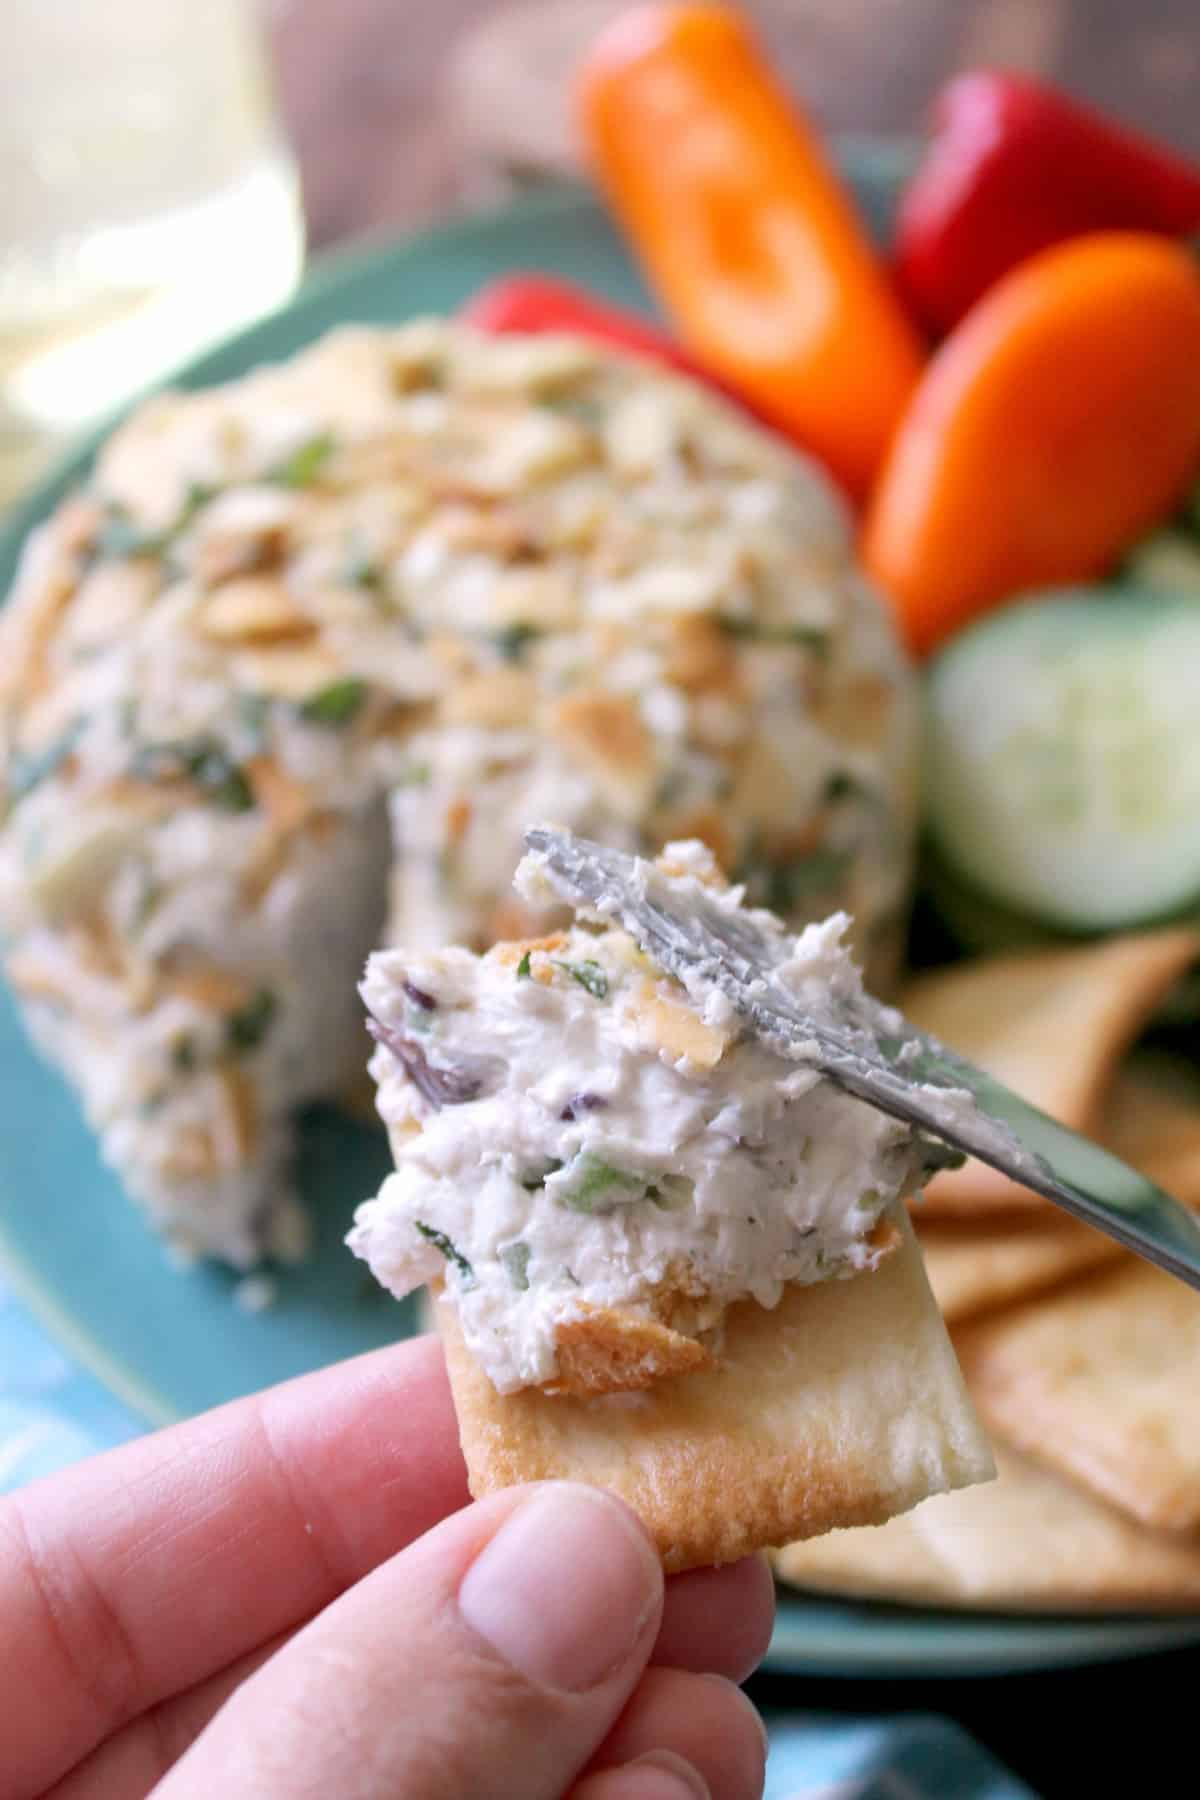 This Easy Greek-Style Cheese Ball is the only recipe you'll need this summer when it comes to quick and simple potluck contributions and last minute entertaining! Bursting with fresh, herbacious flavors that go perfectly with crisp vegetables or crackers, you might have whip up a double batch!